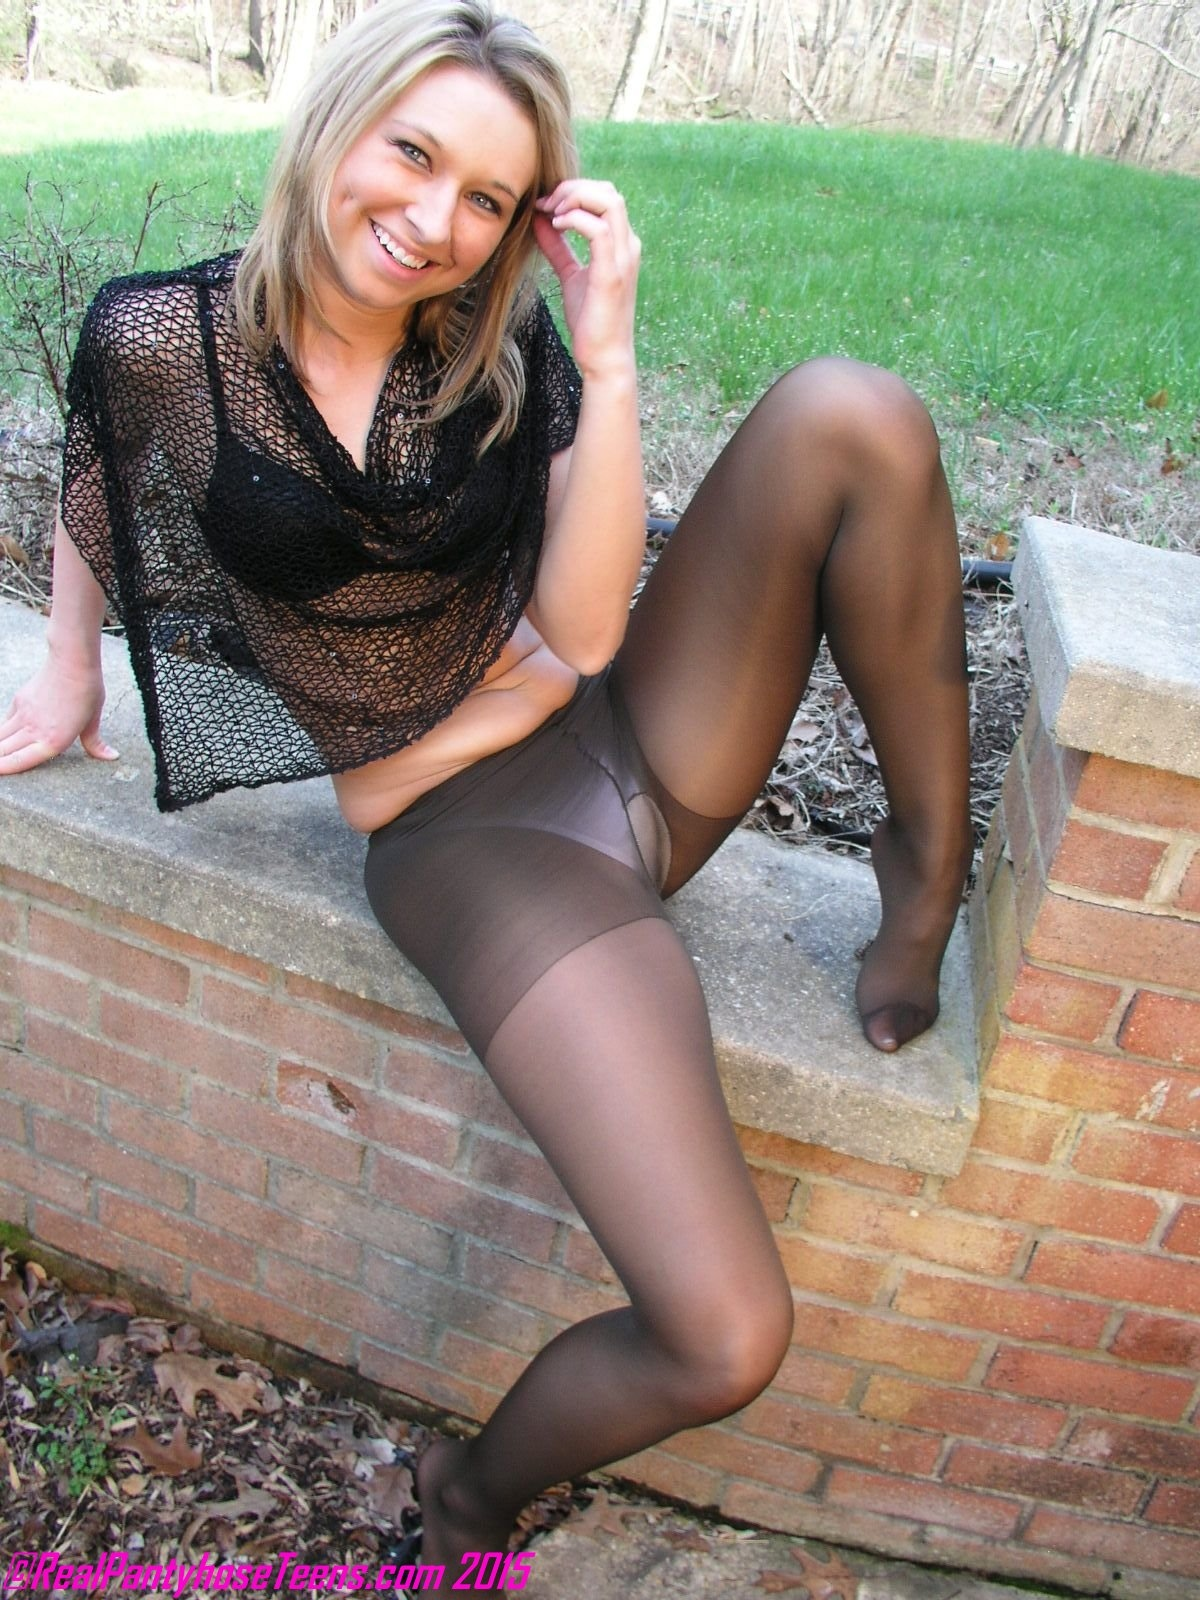 hose Girl in panty